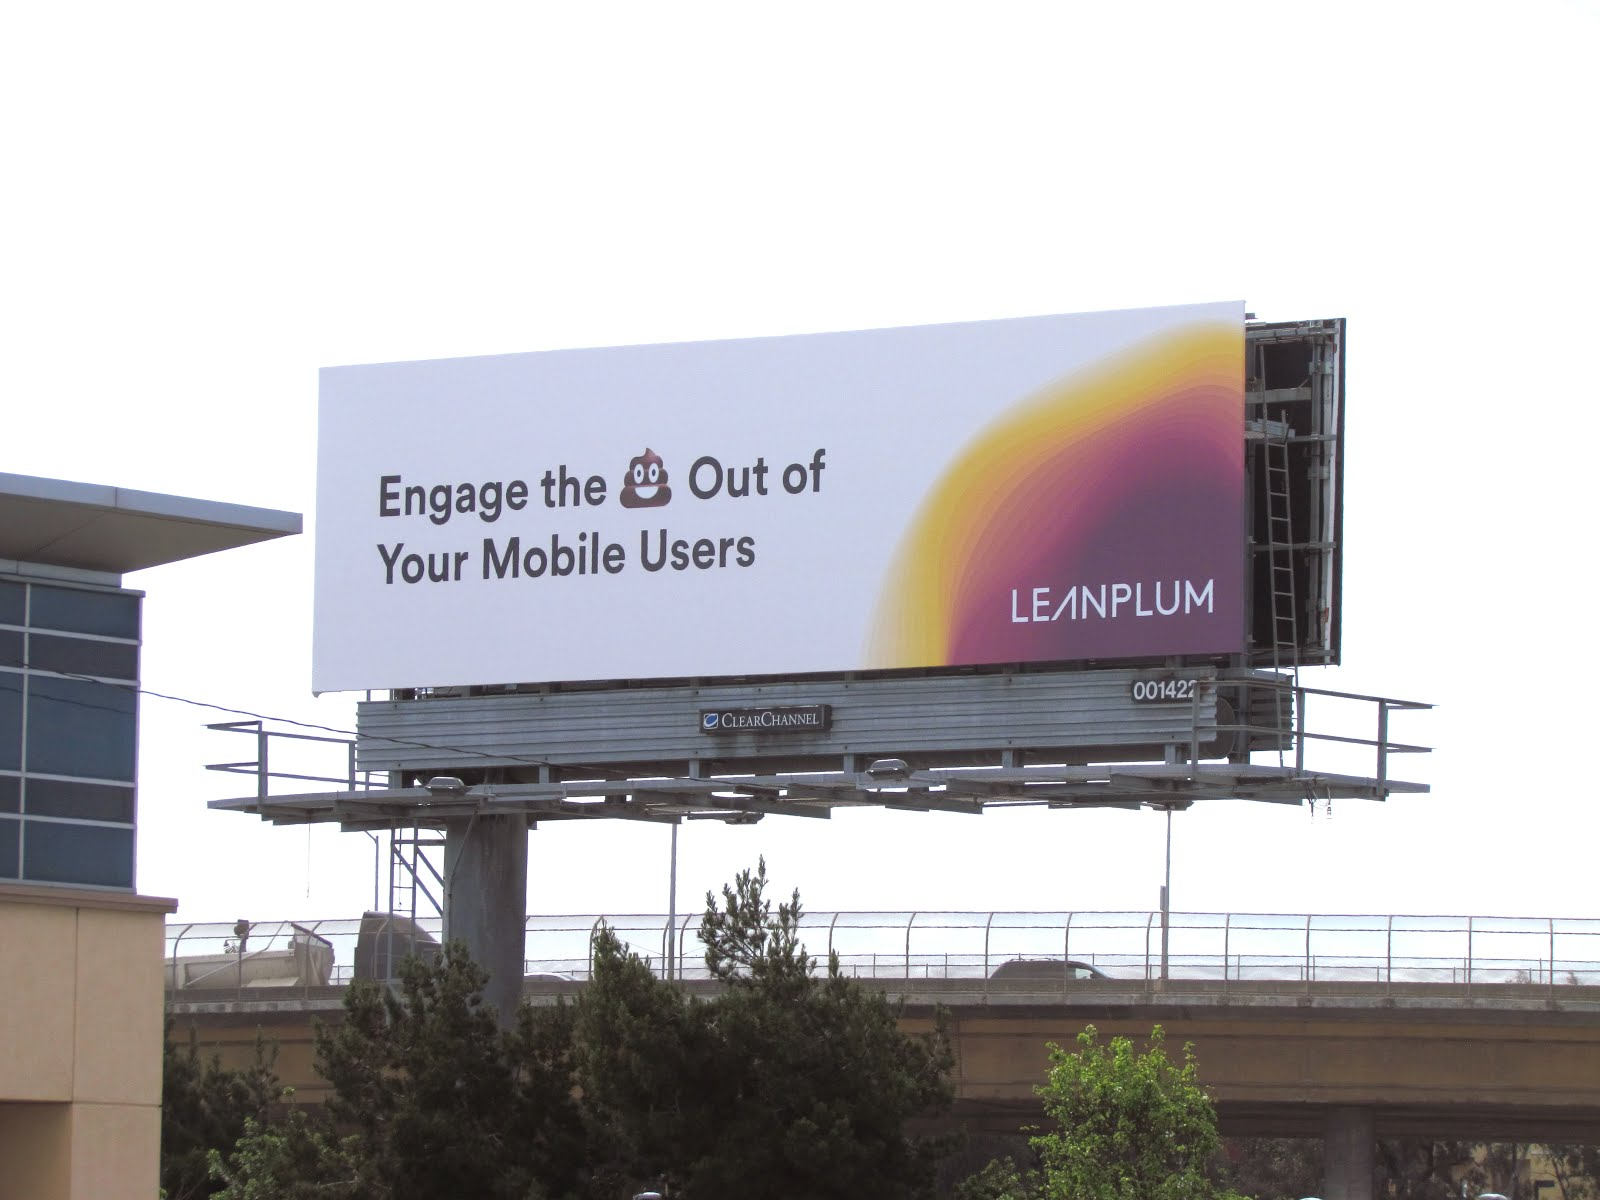 Mobile marketing company Leanplum commissioned a series of billboards along Hwy 101 between ...